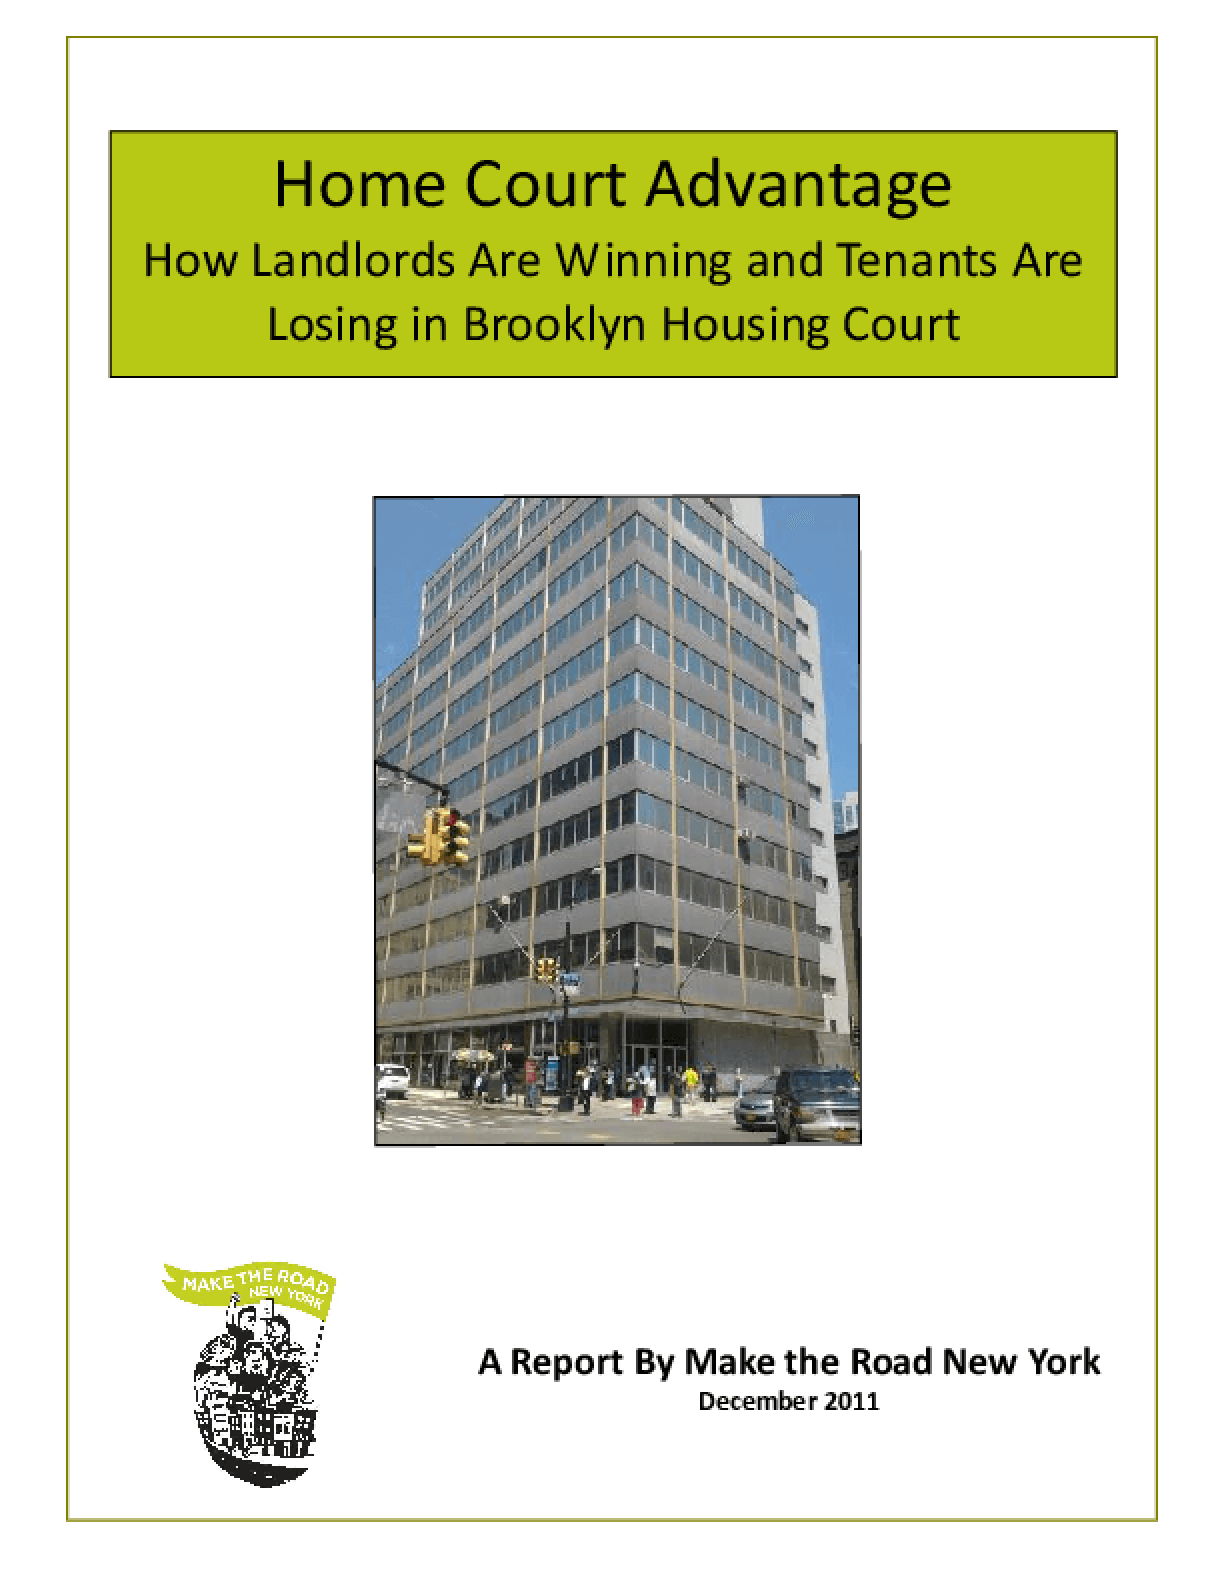 Home Court Advantage: How Landlords Are Winning and Tenants Are Losing in Brooklyn Housing Court